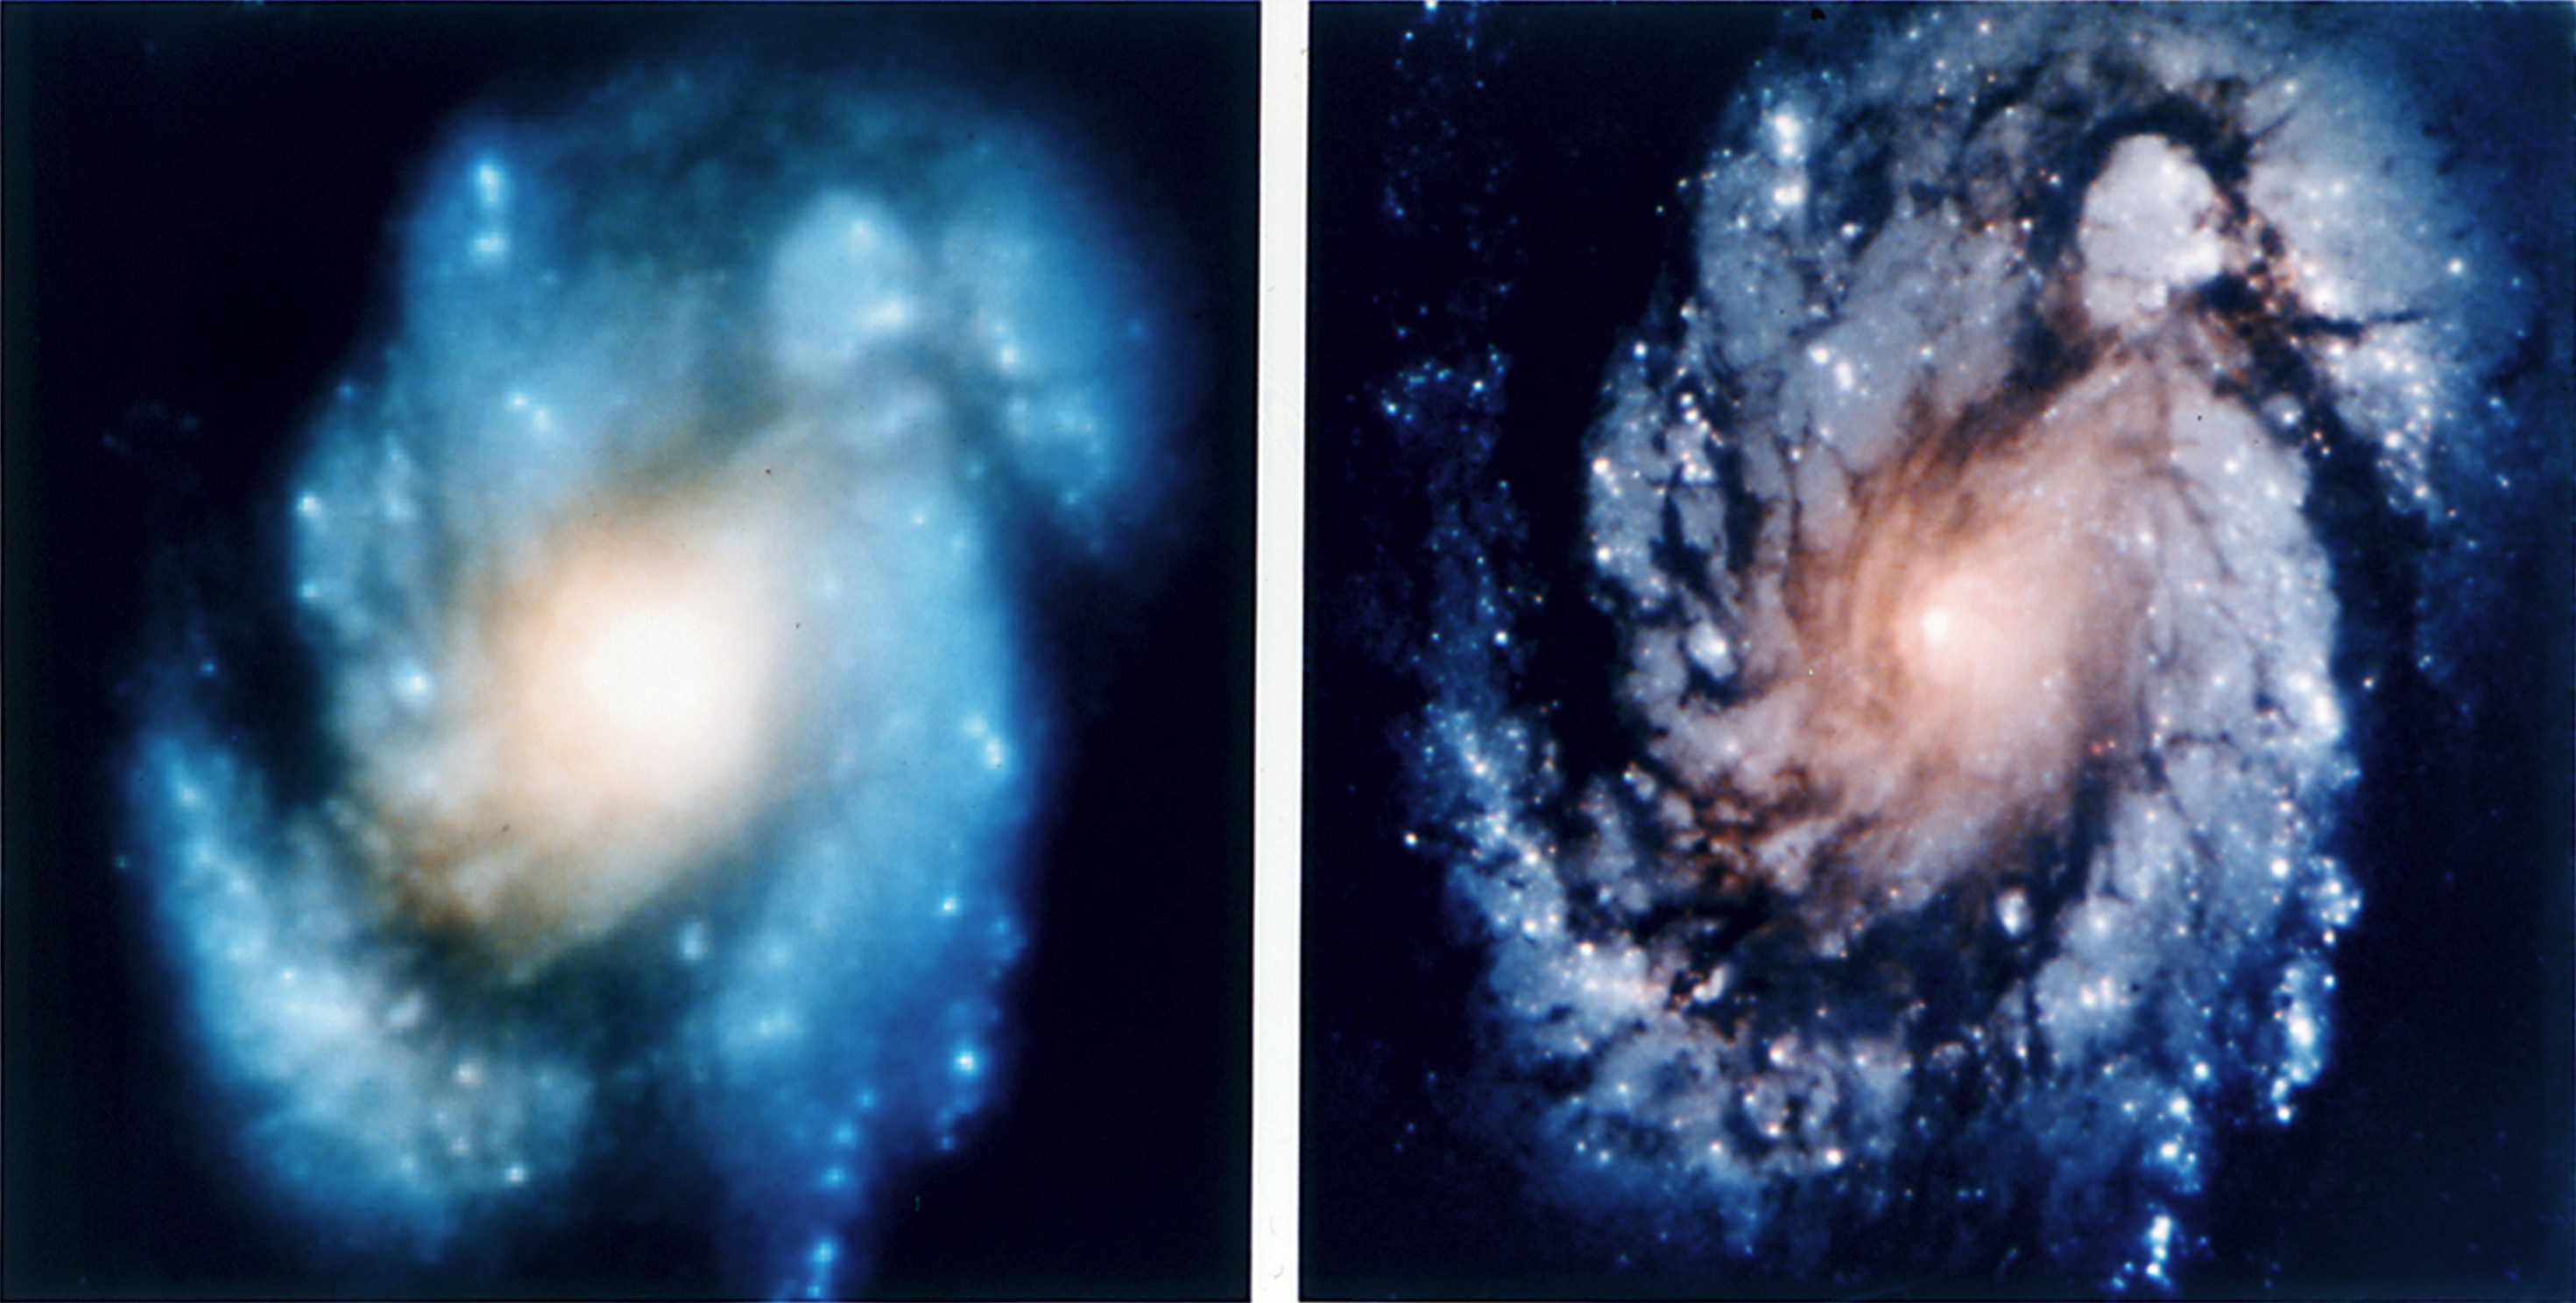 http://upload.wikimedia.org/wikipedia/commons/1/12/Improvement_in_Hubble_images_after_SMM1.jpg